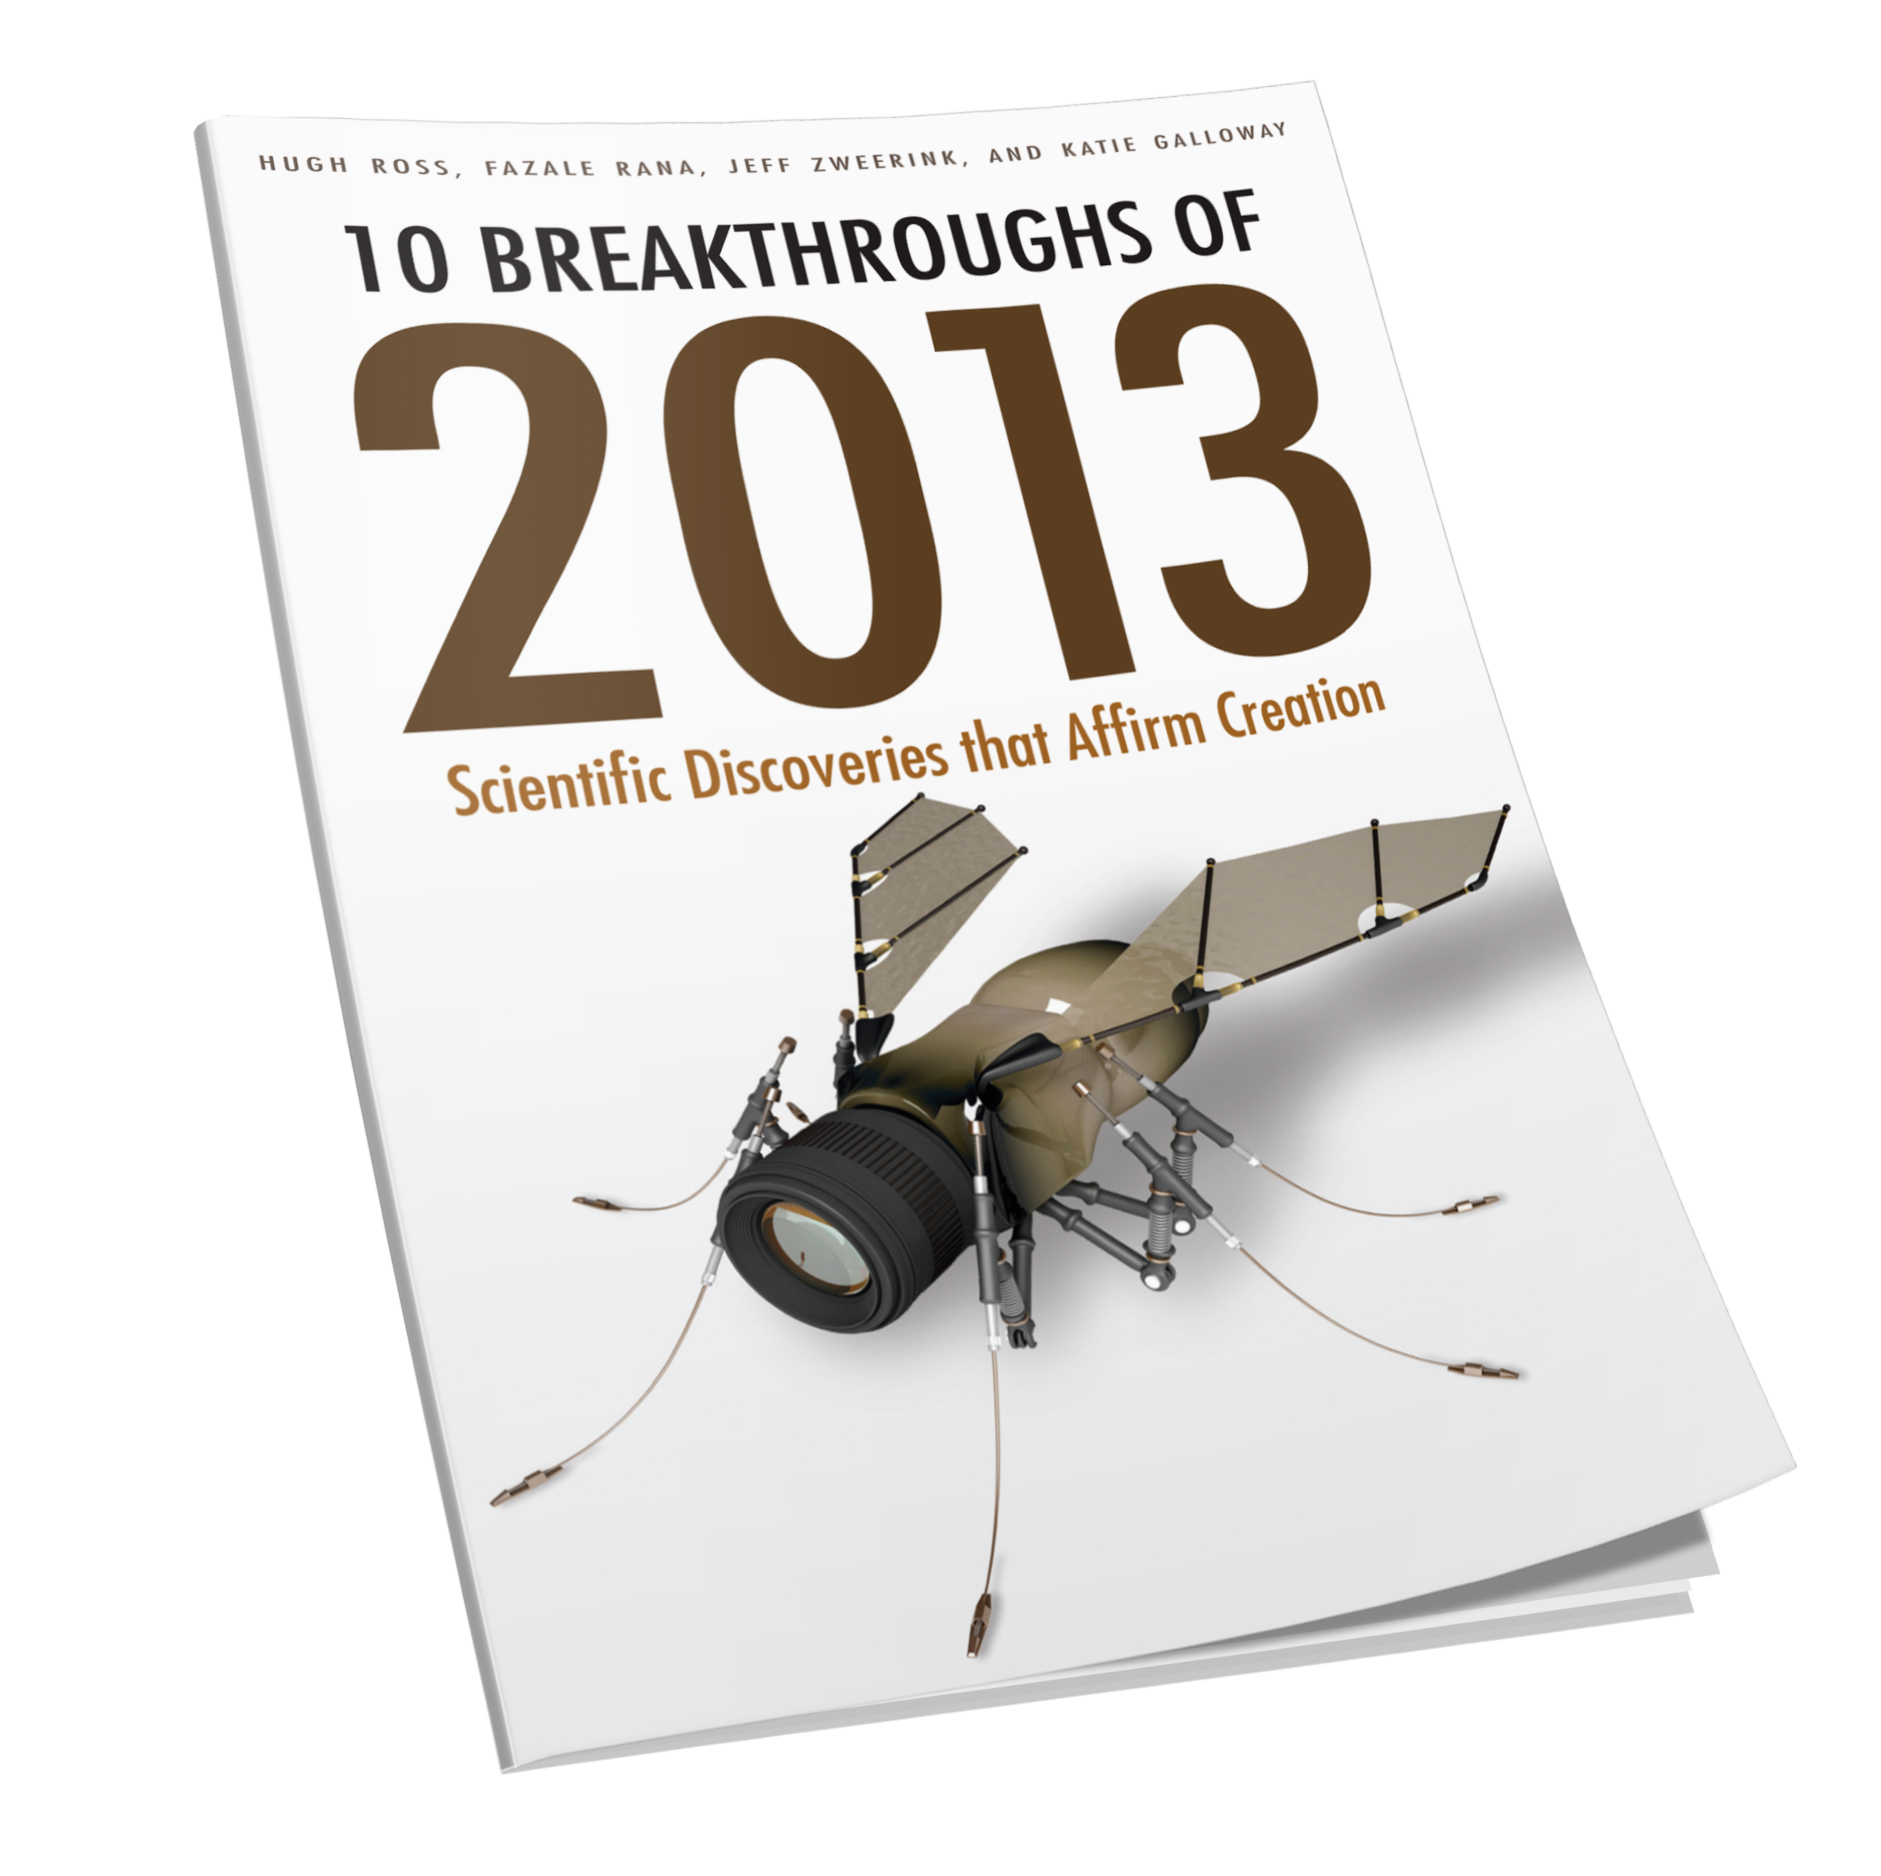 10 Breakthroughs of 2013 Image